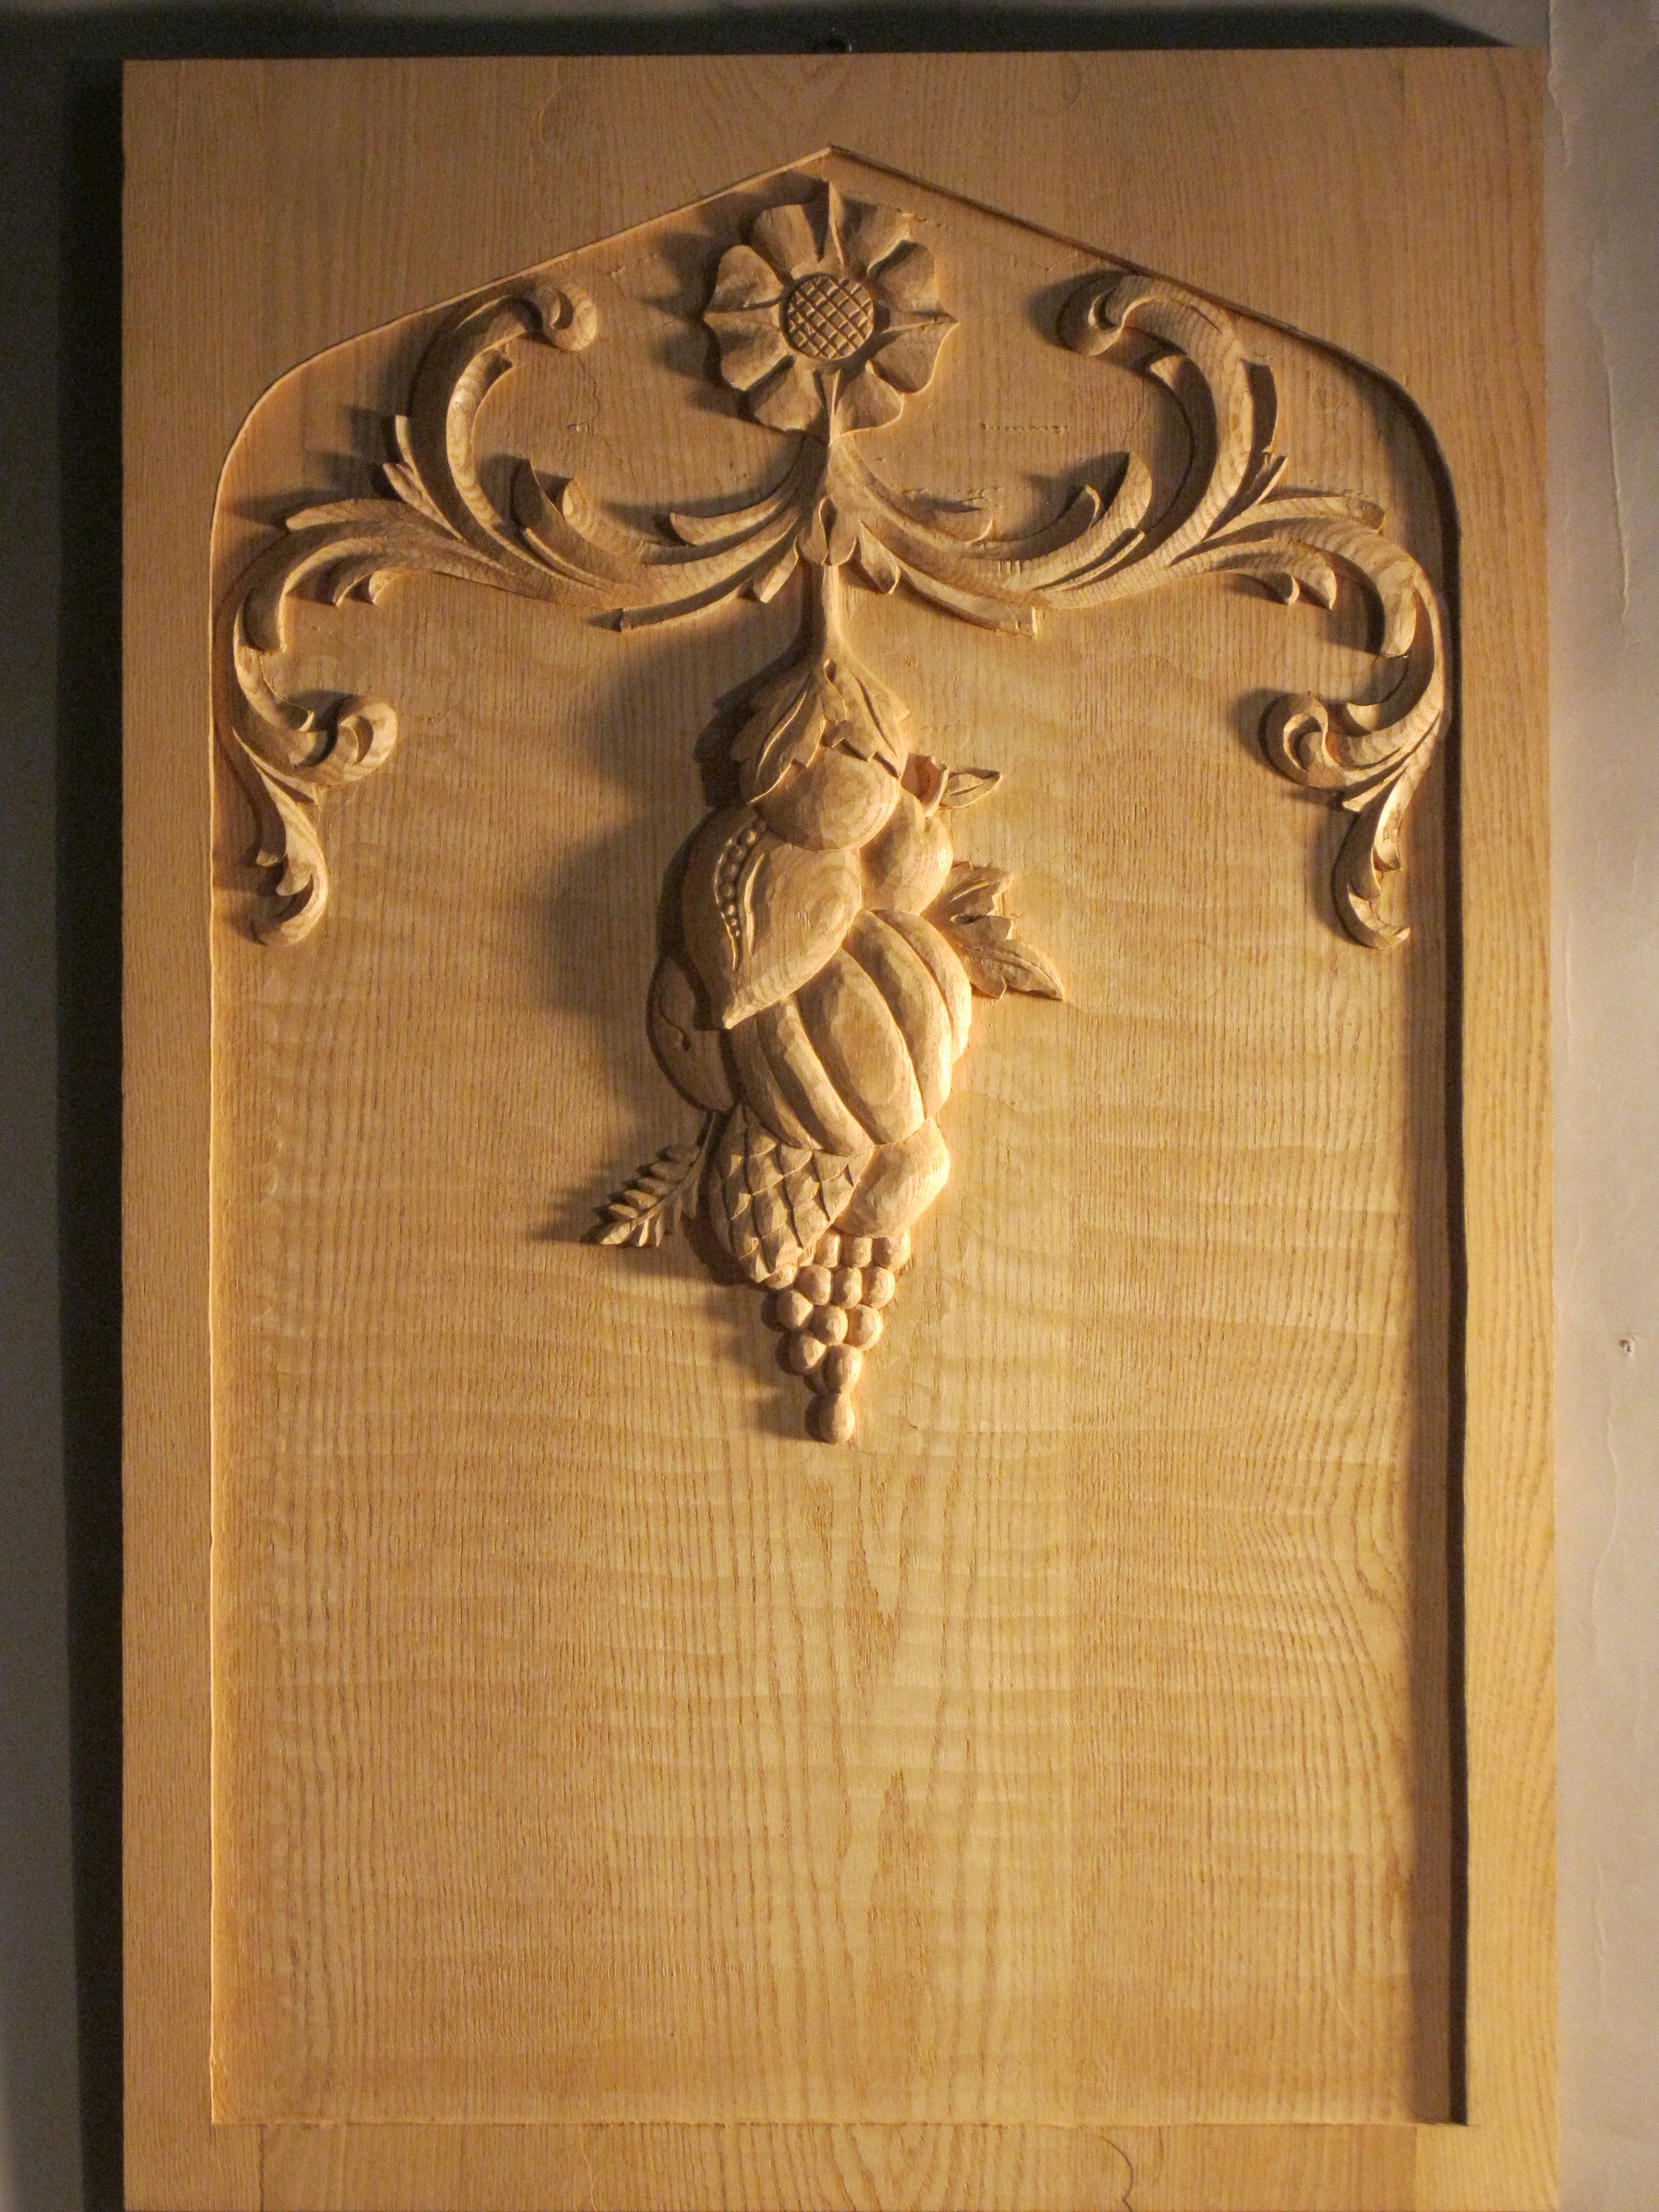 The finished, carved door for a pantry